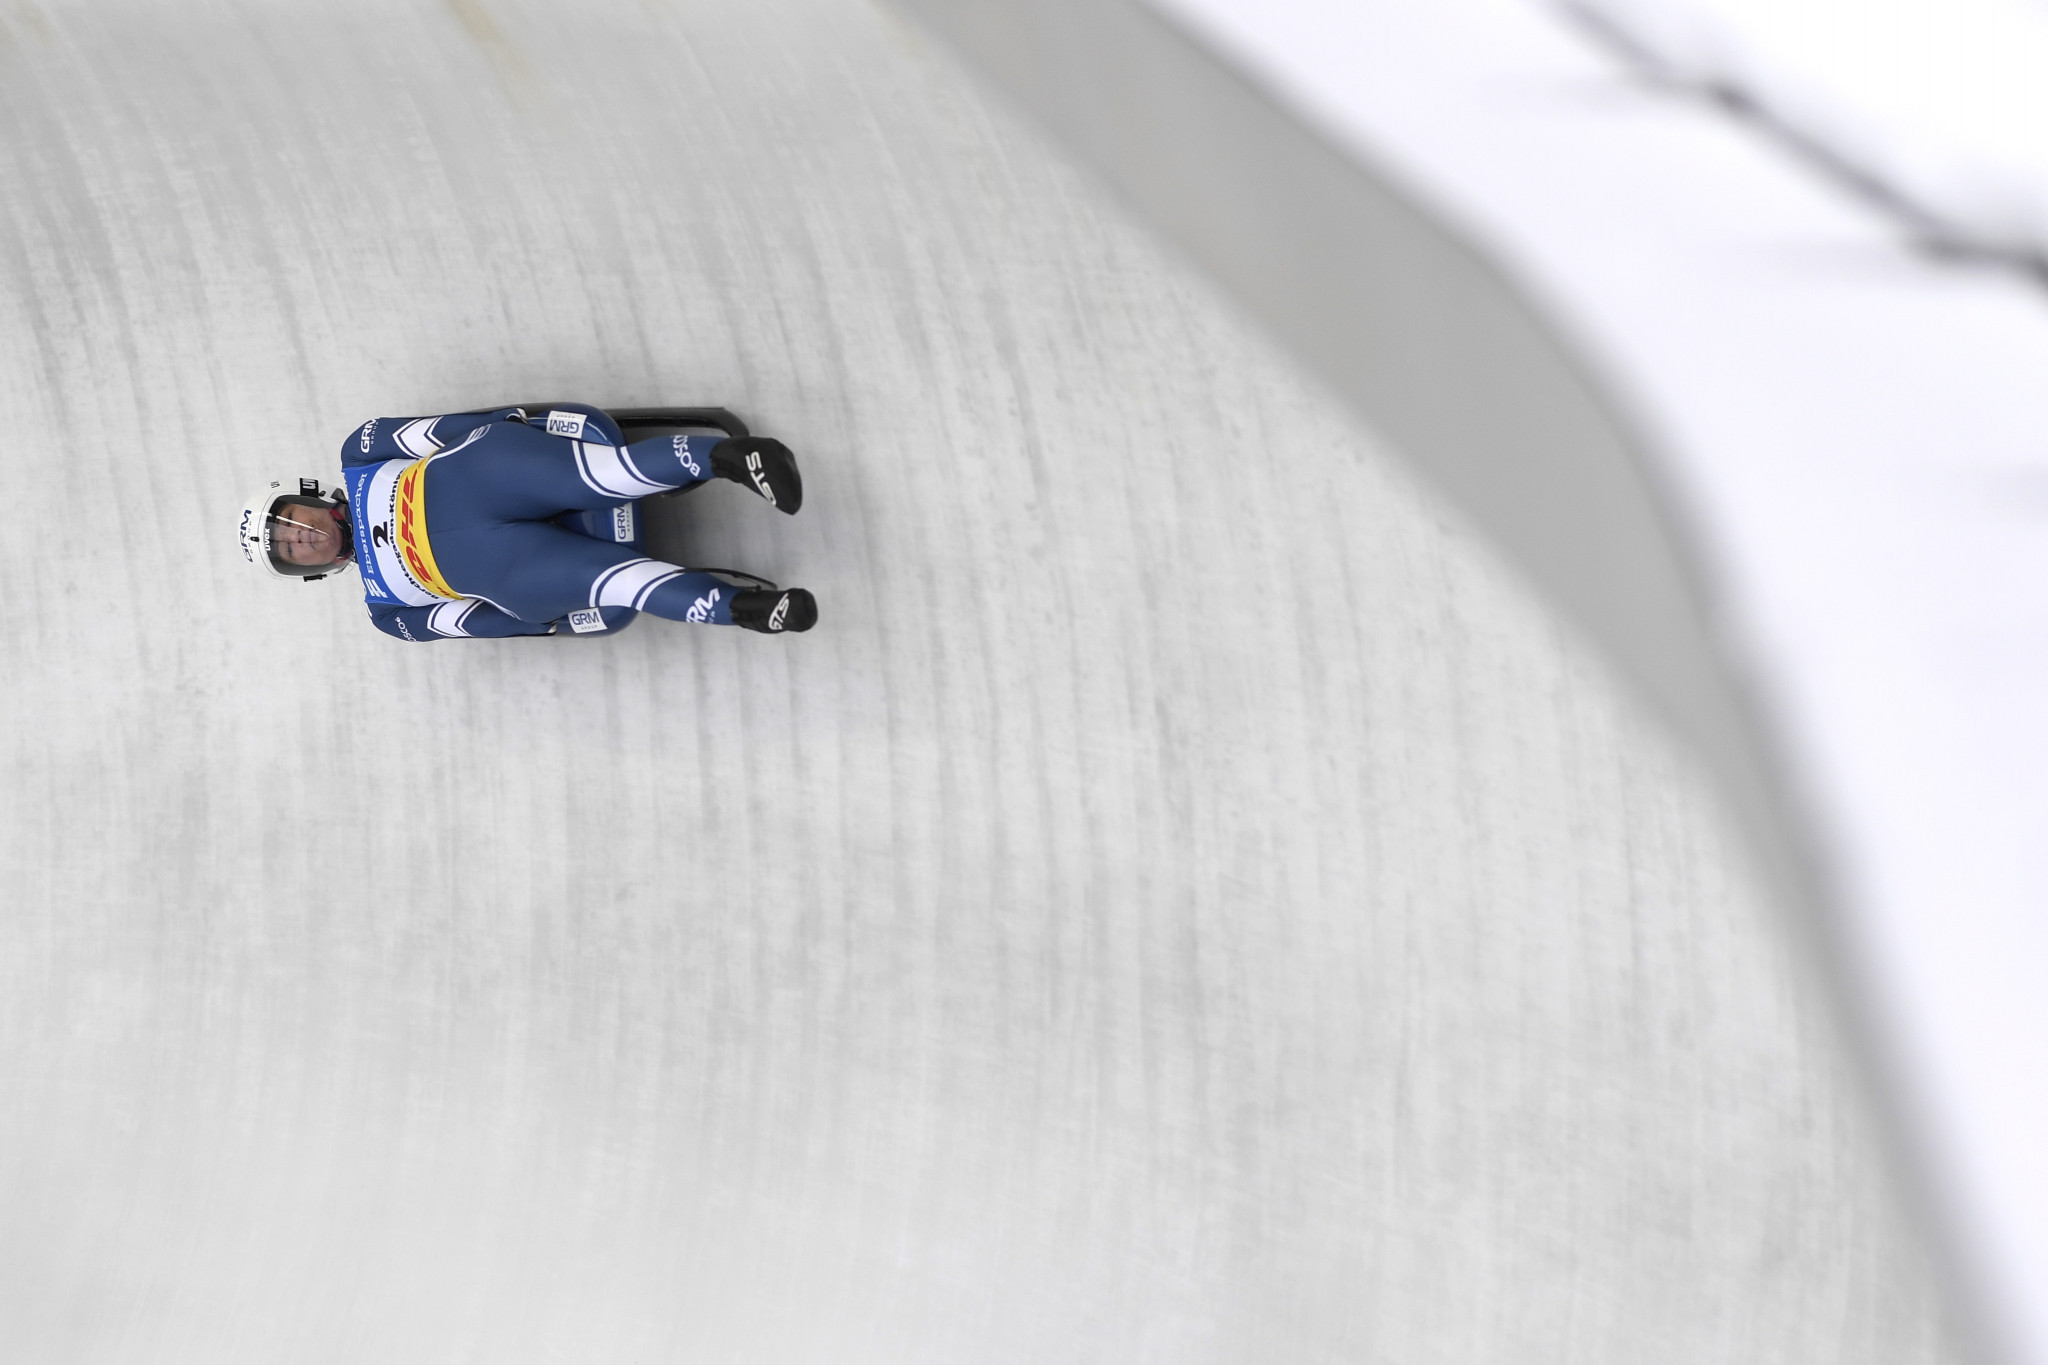 Russian Luge Federation coach optimistic prior to Beijing 2022 Winter Olympics